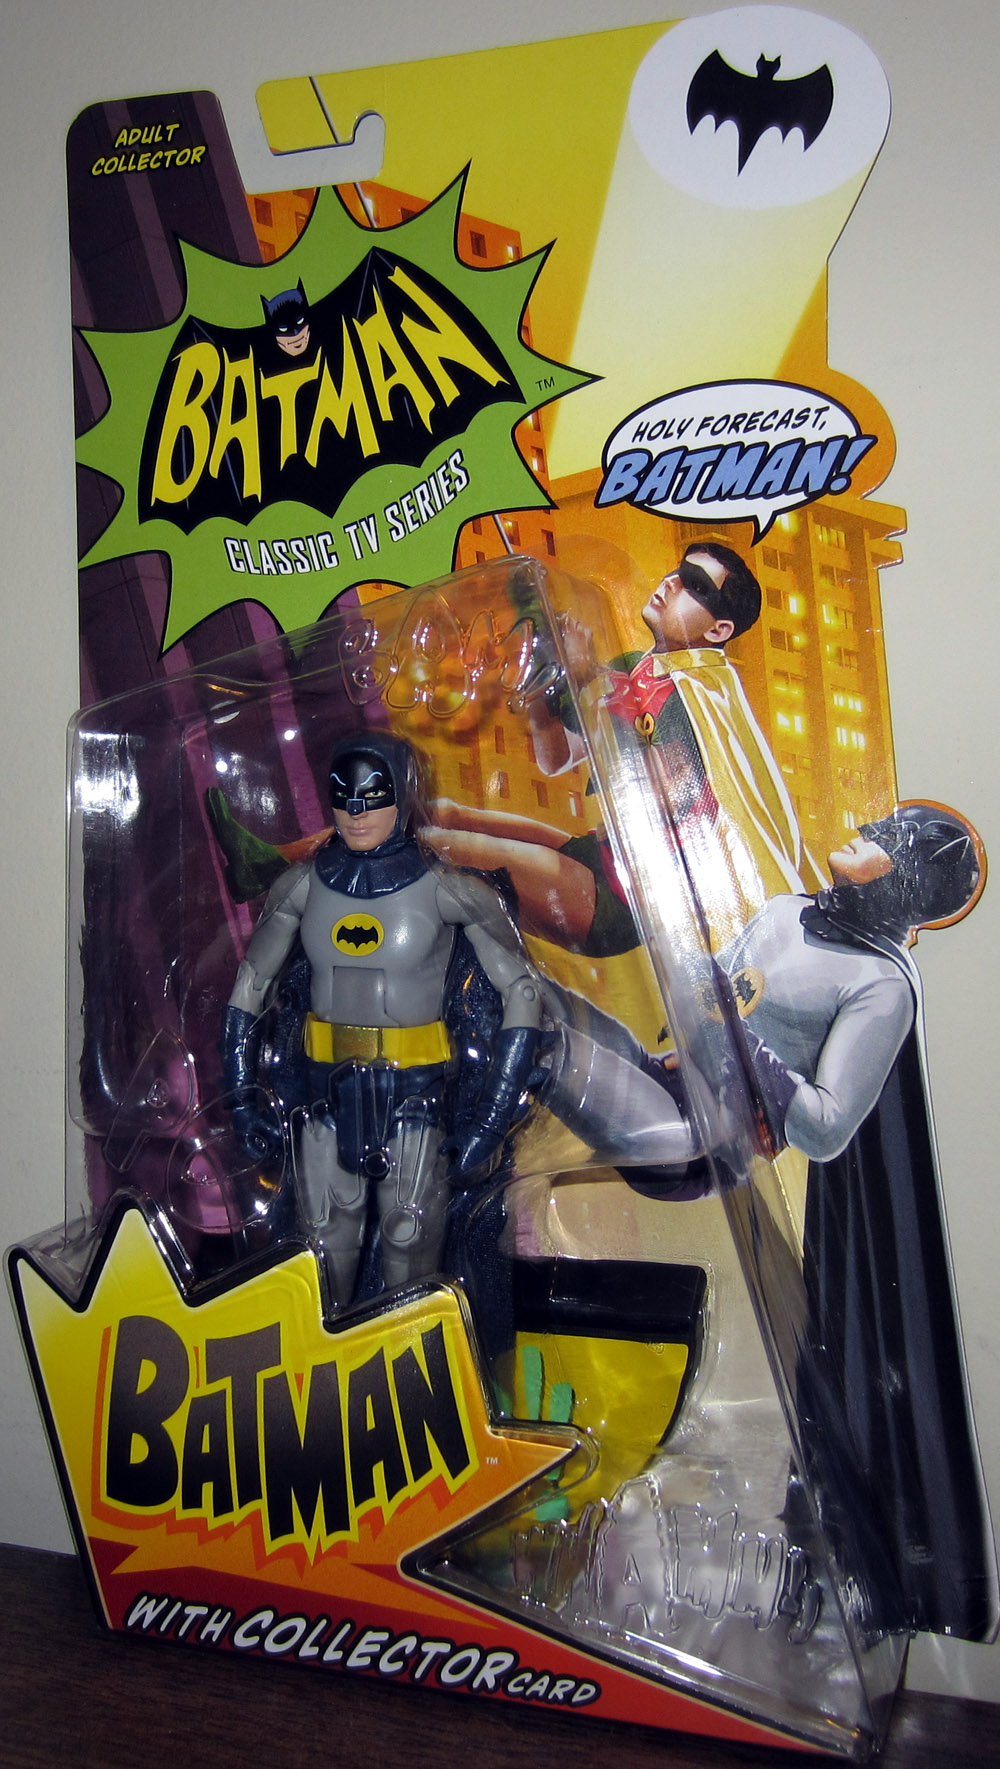 Batman (Classic TV Series)